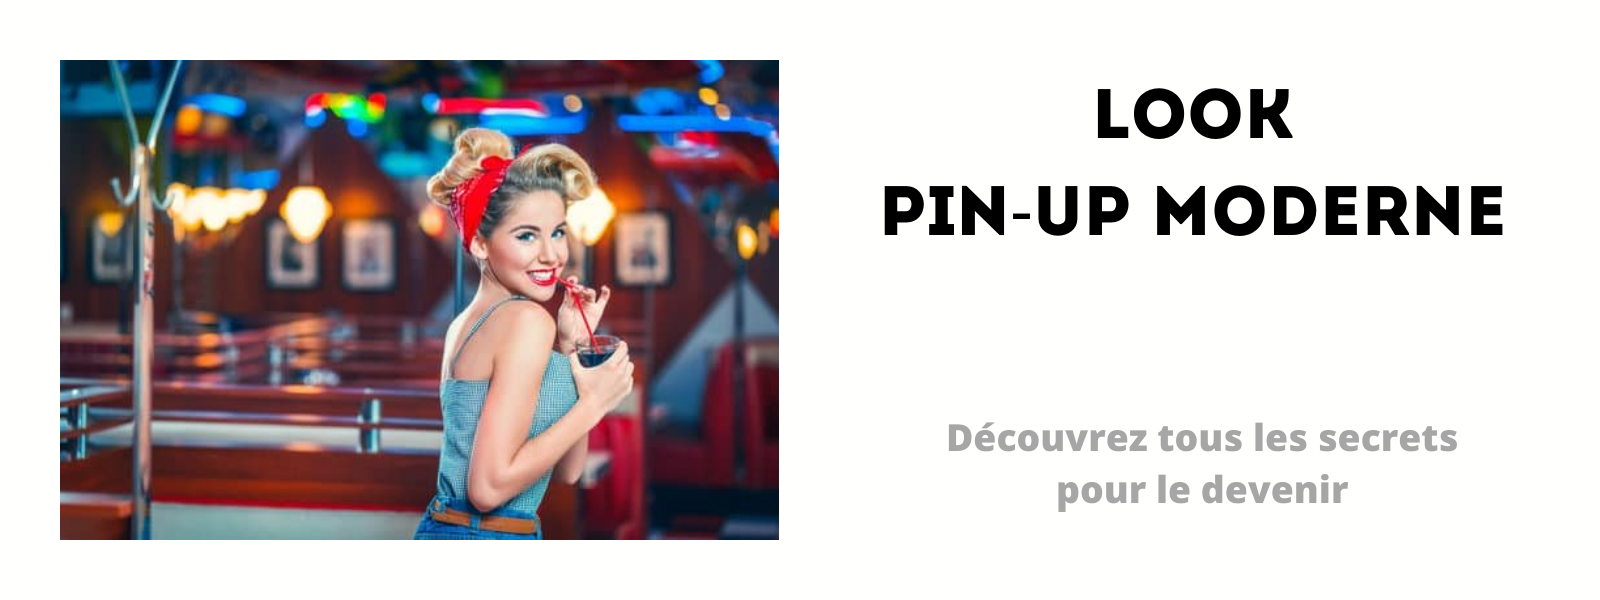 look pin up moderne pin up girl